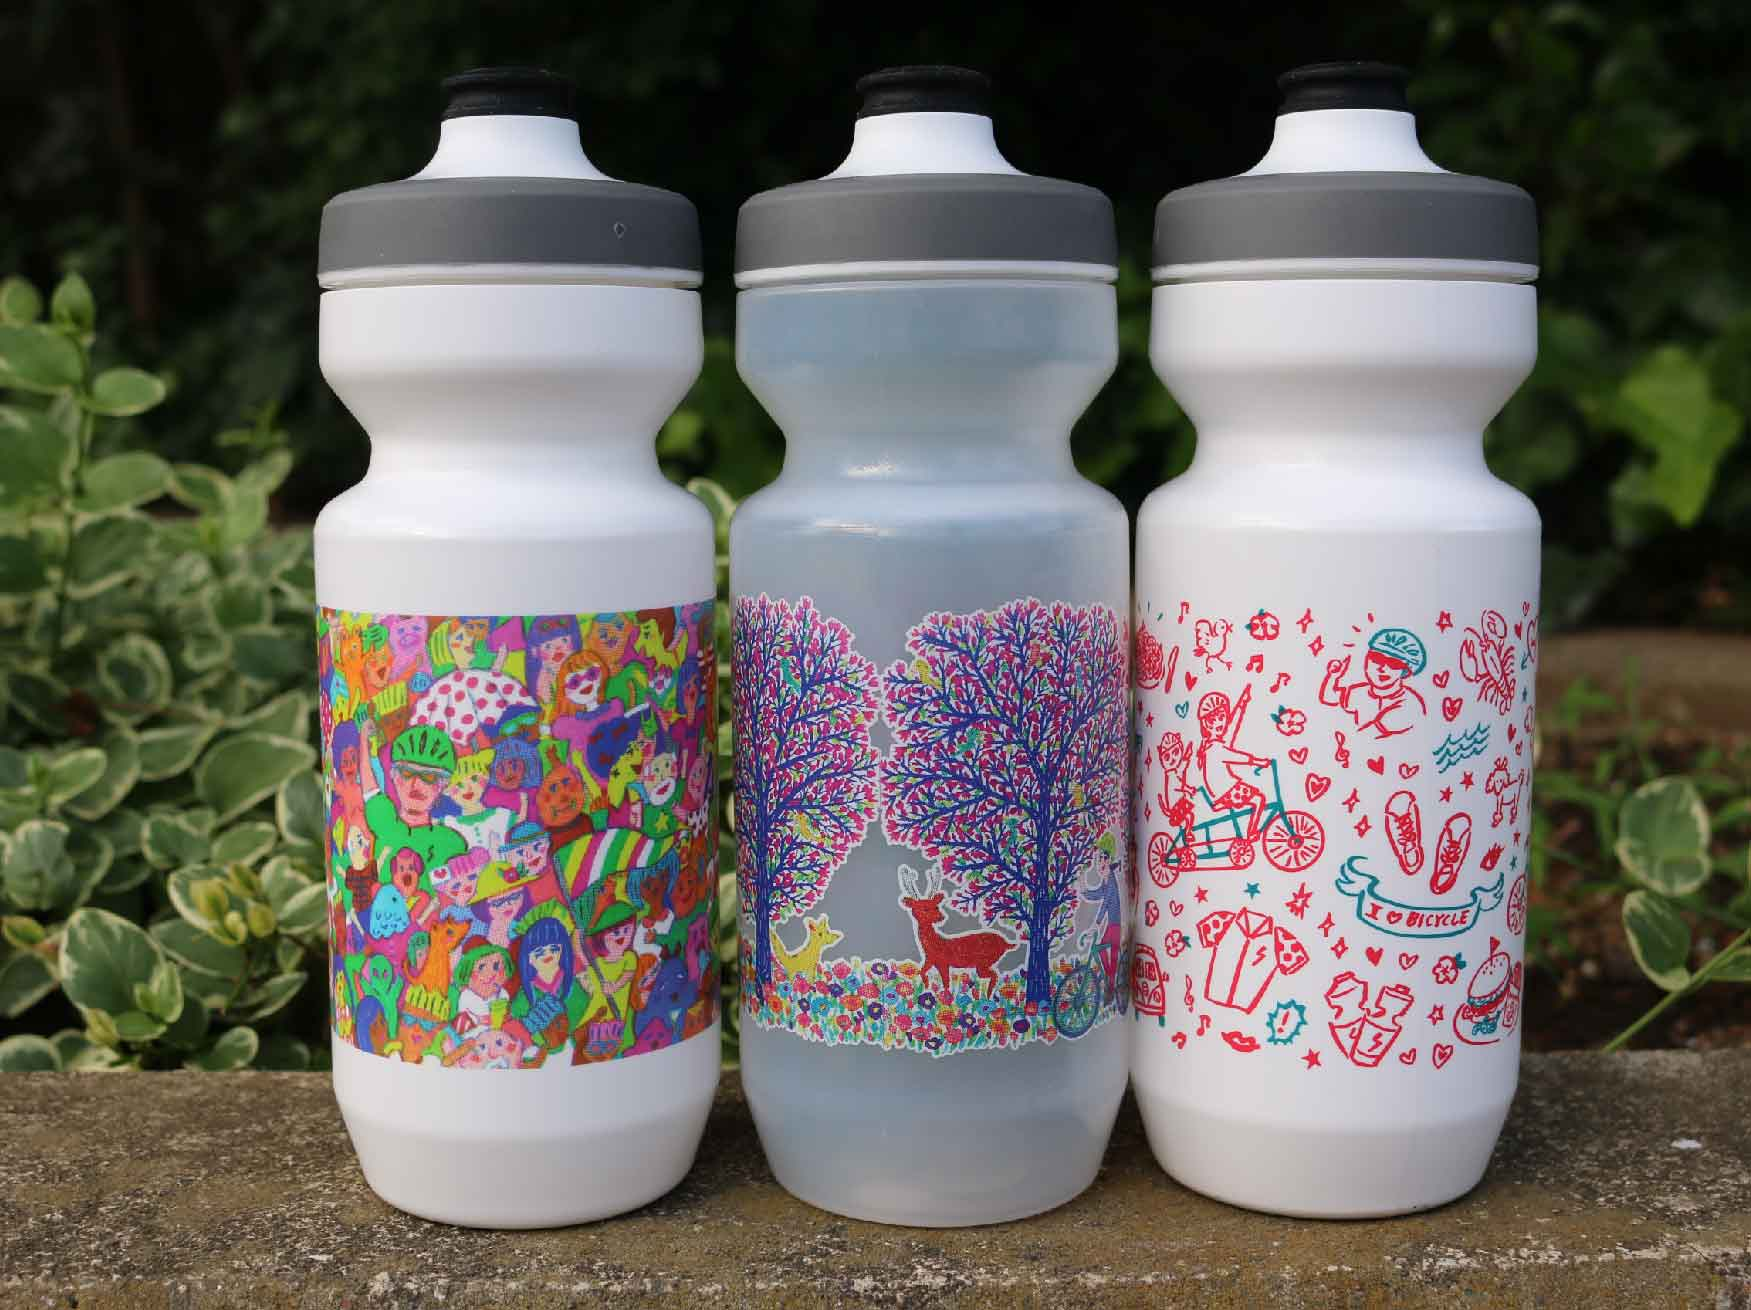 22OZ PURIST WATERGATE BOTTLE DESIGNER'S COLLECTION